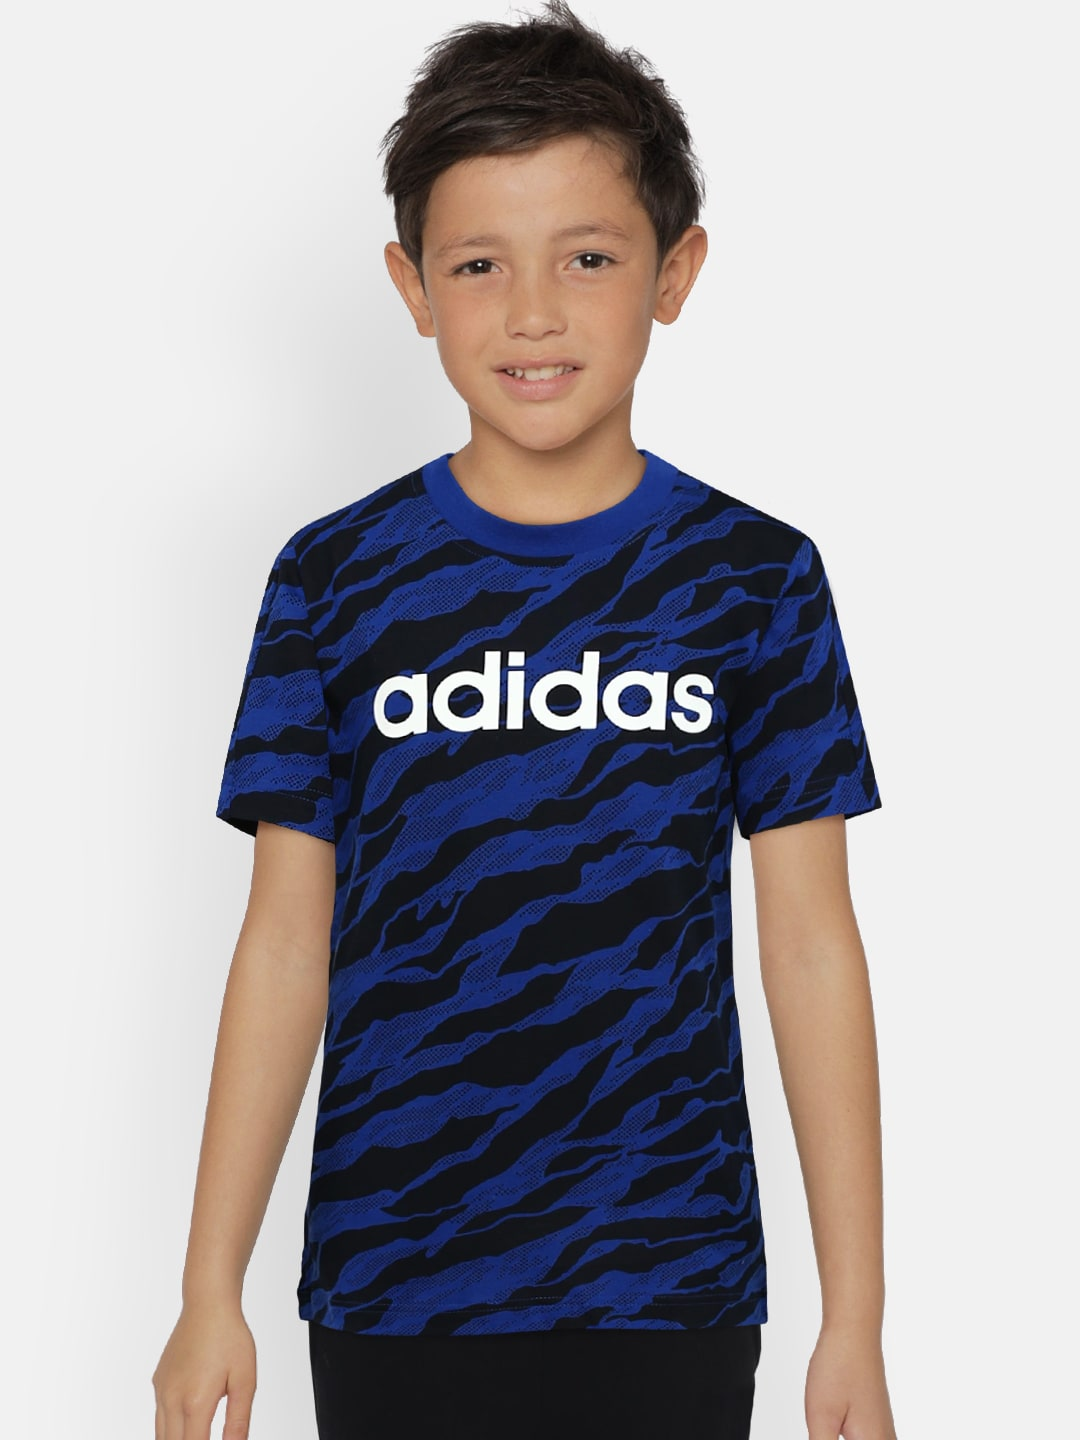 593c9d423 Adidas T-Shirts - Buy Adidas Tshirts Online in India